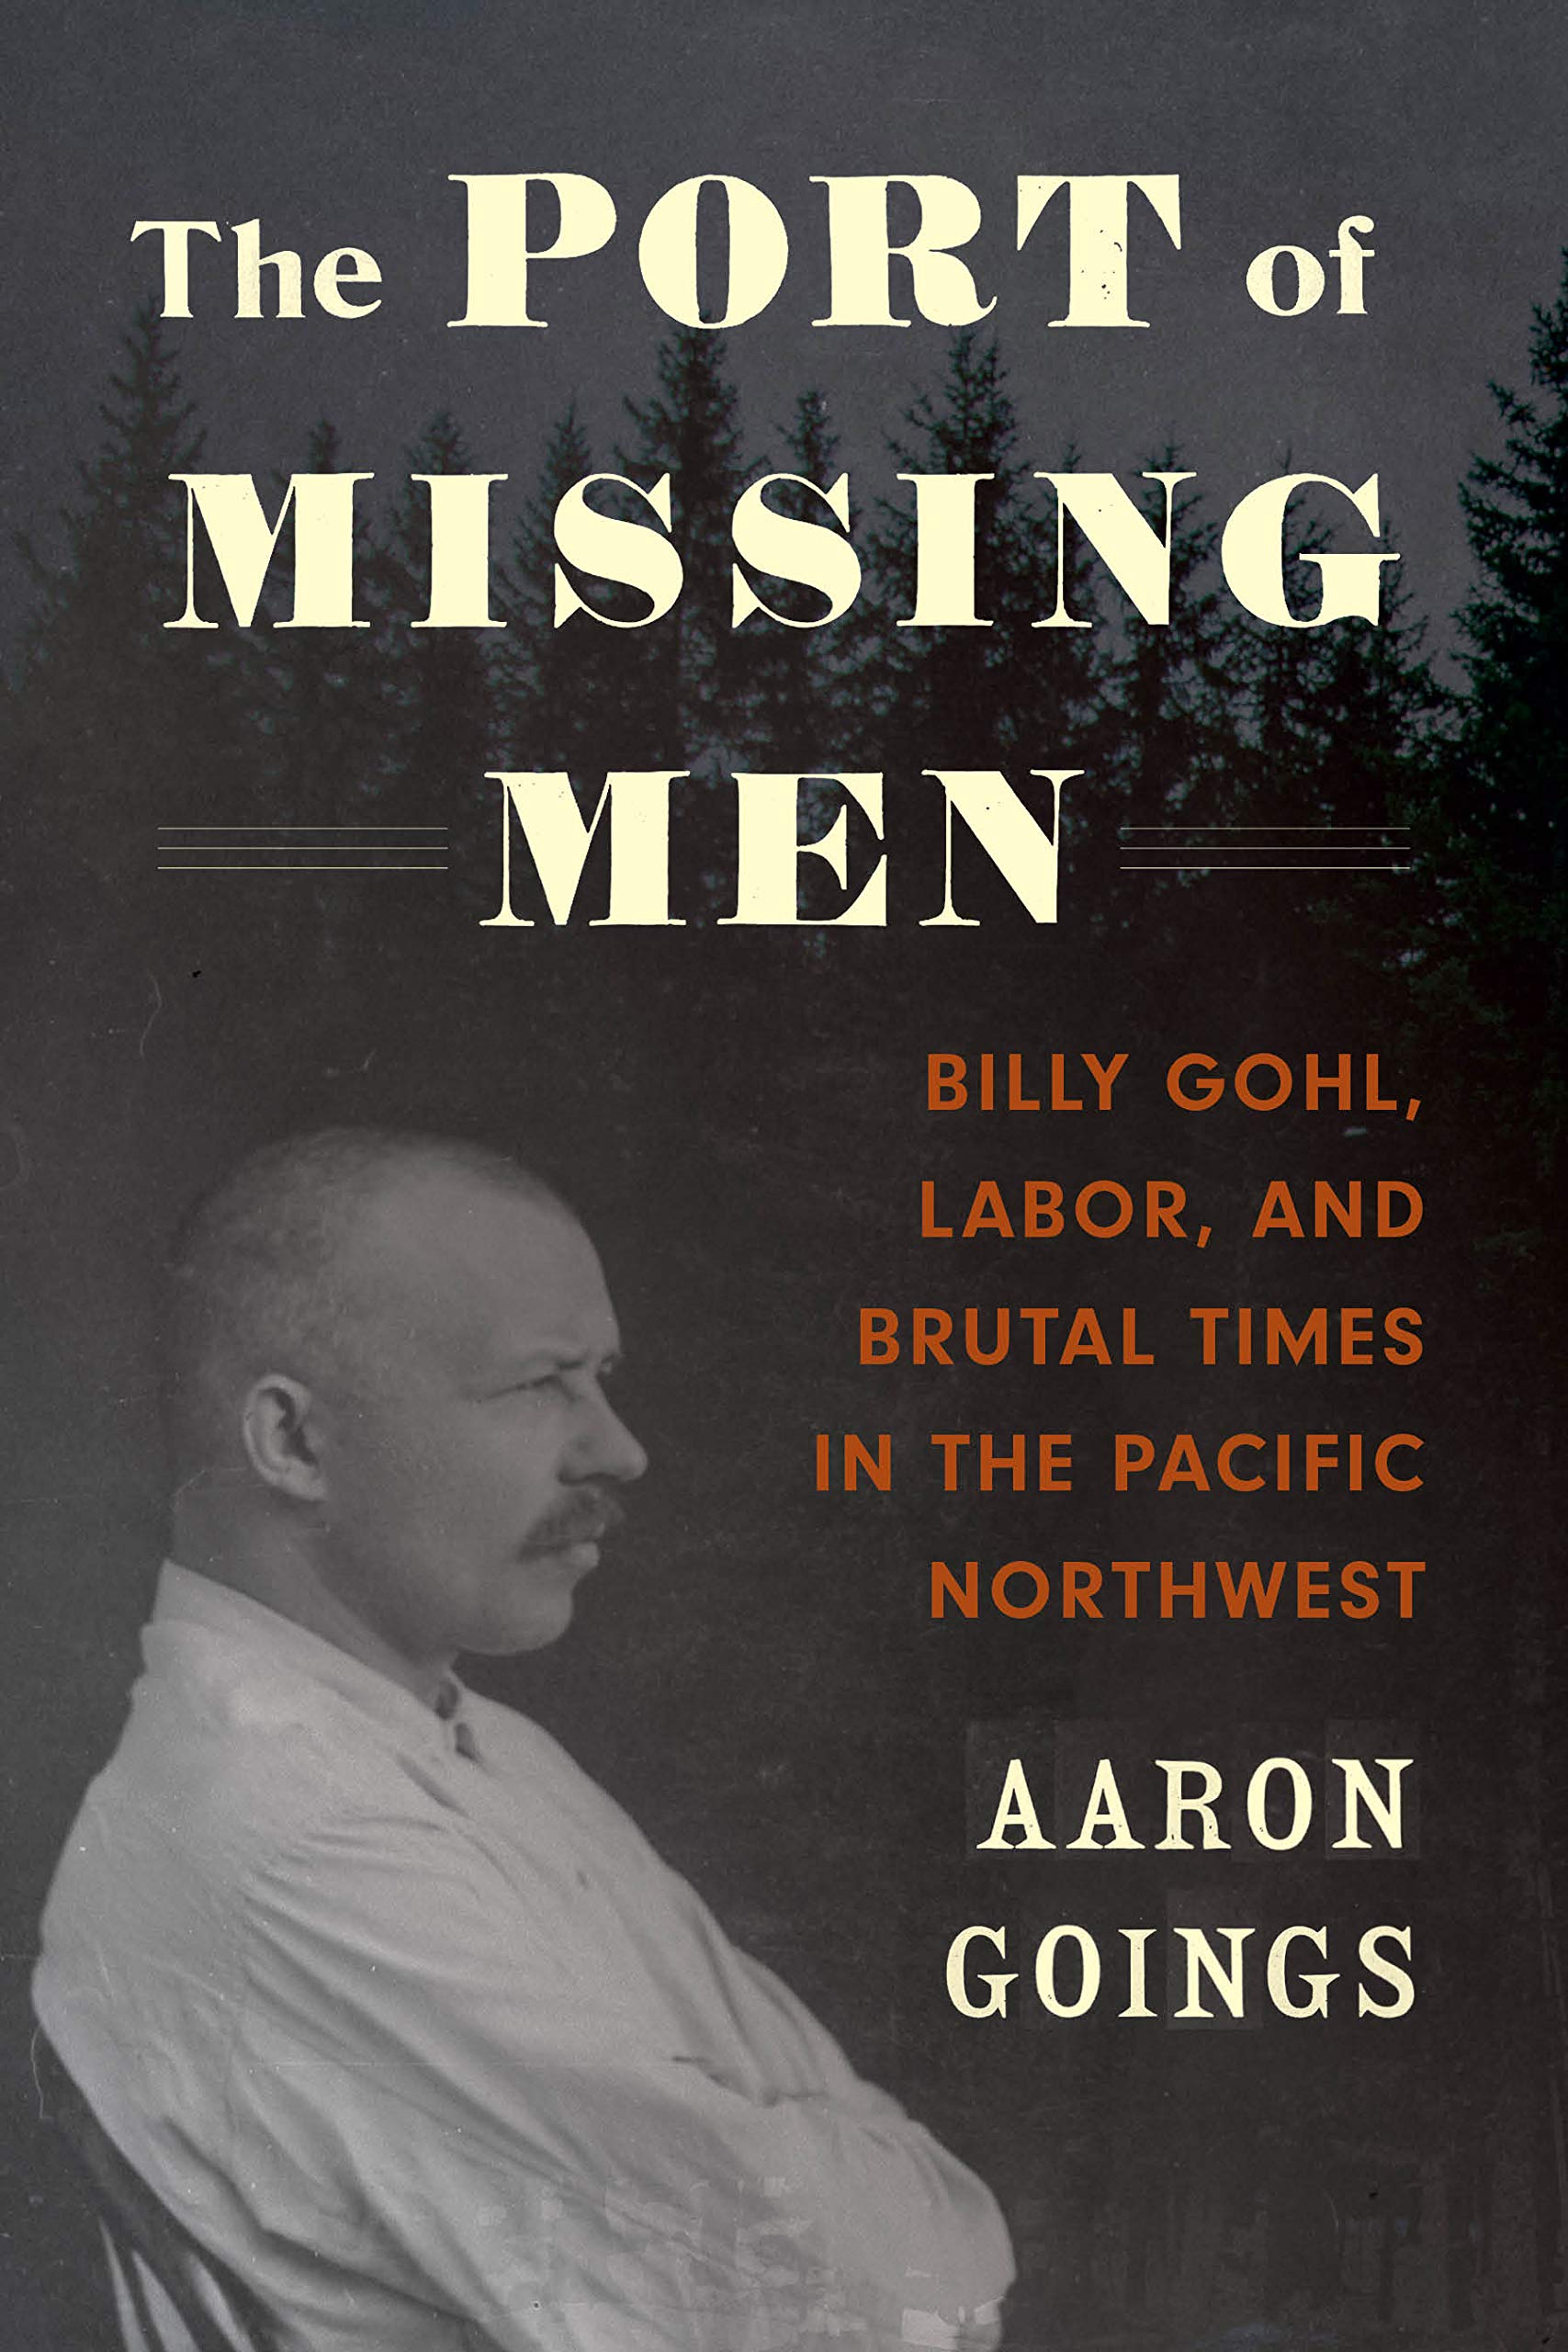 The Port of Missing Men: Billy Gohl, Labor, and Brutal Times in the Pacific Northwest